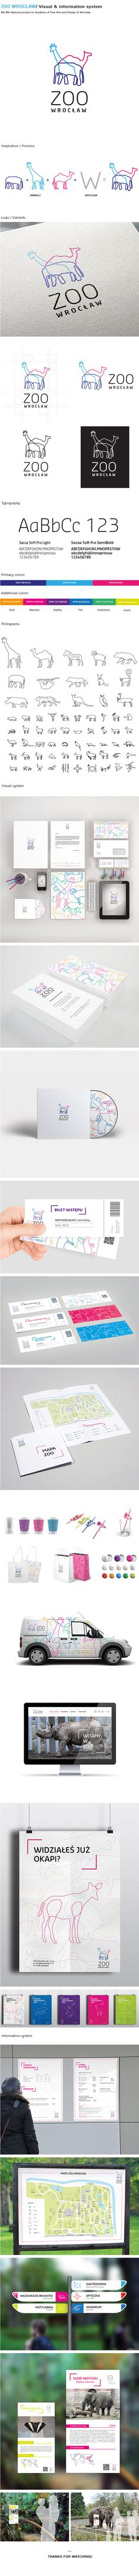 ZOO WROCLAW © on Behance by Agata Szota. Long pin by great packaging and branding PD